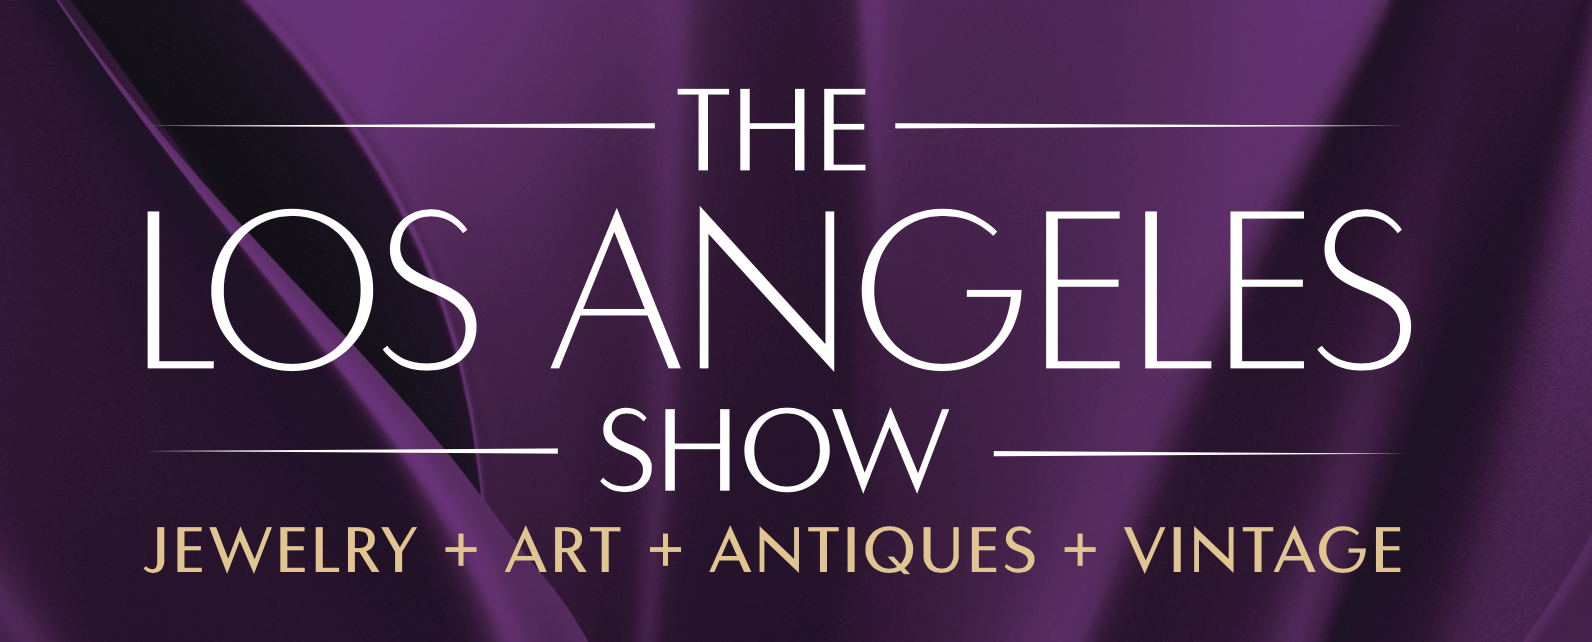 The Los Angeles Show | Jewelry + Art + Antiques + Vintage